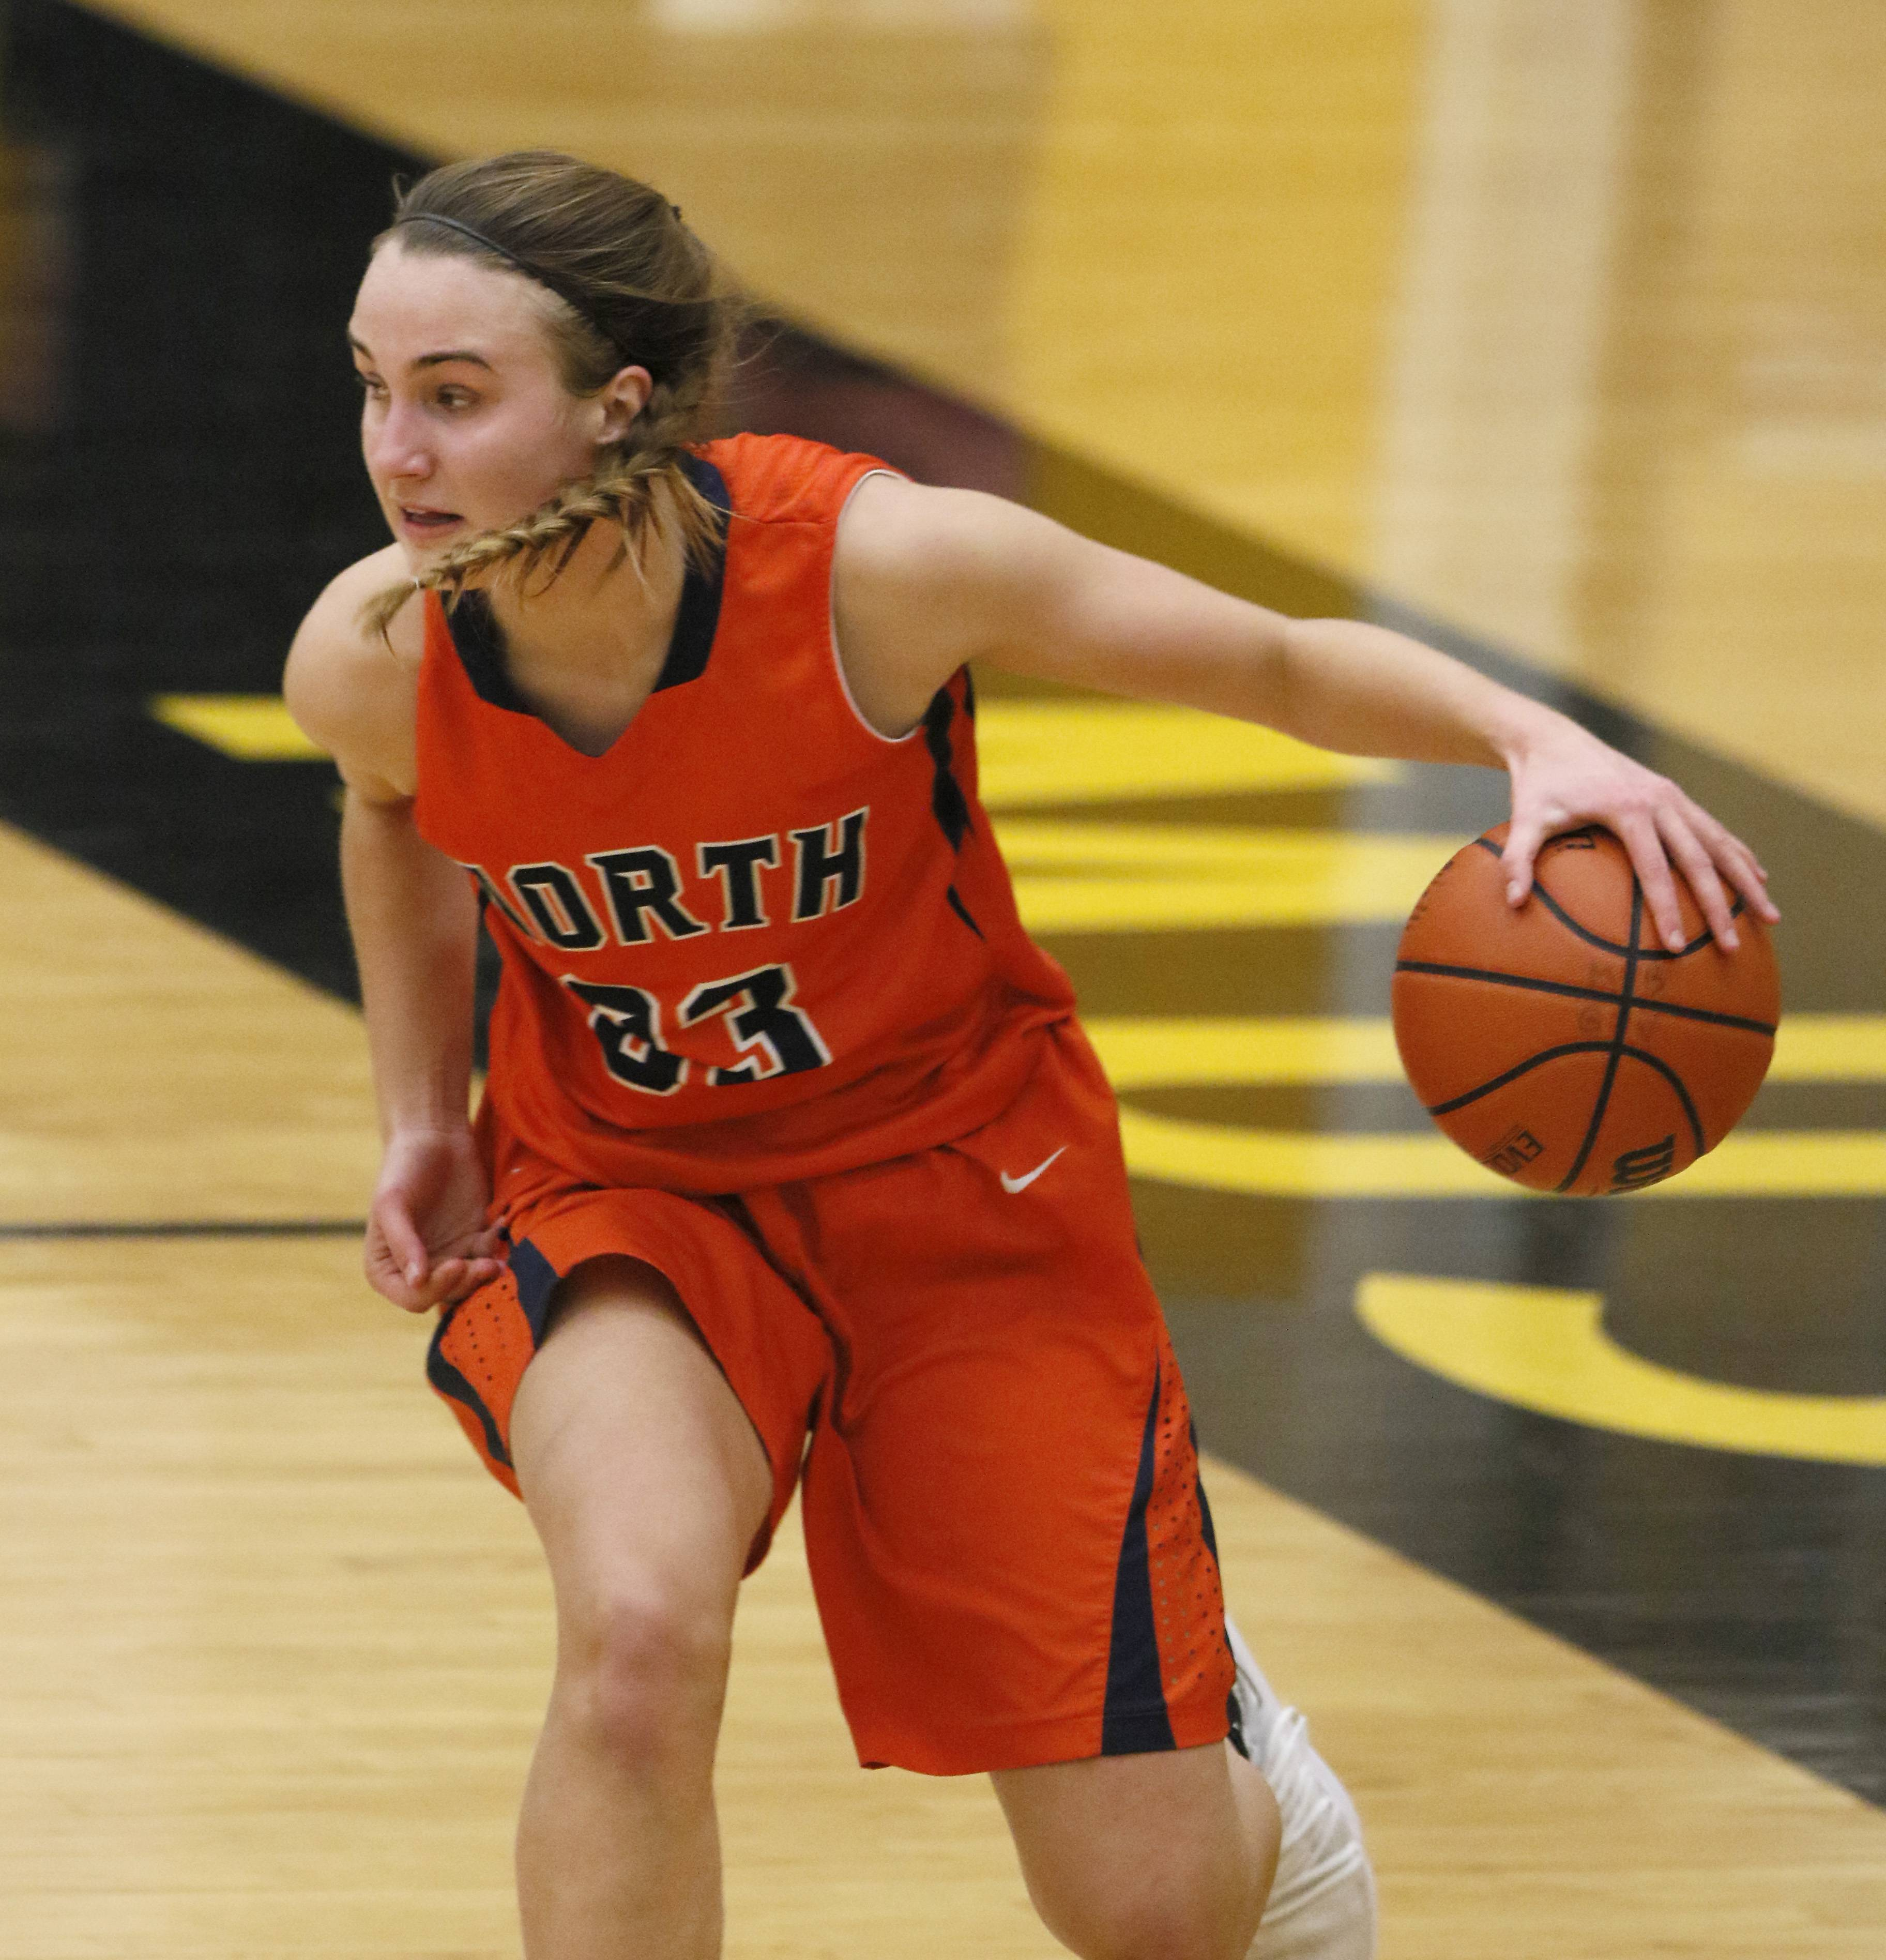 Naperville Central's Greta Kampschroeder moves the ball up court against Metea Valley.